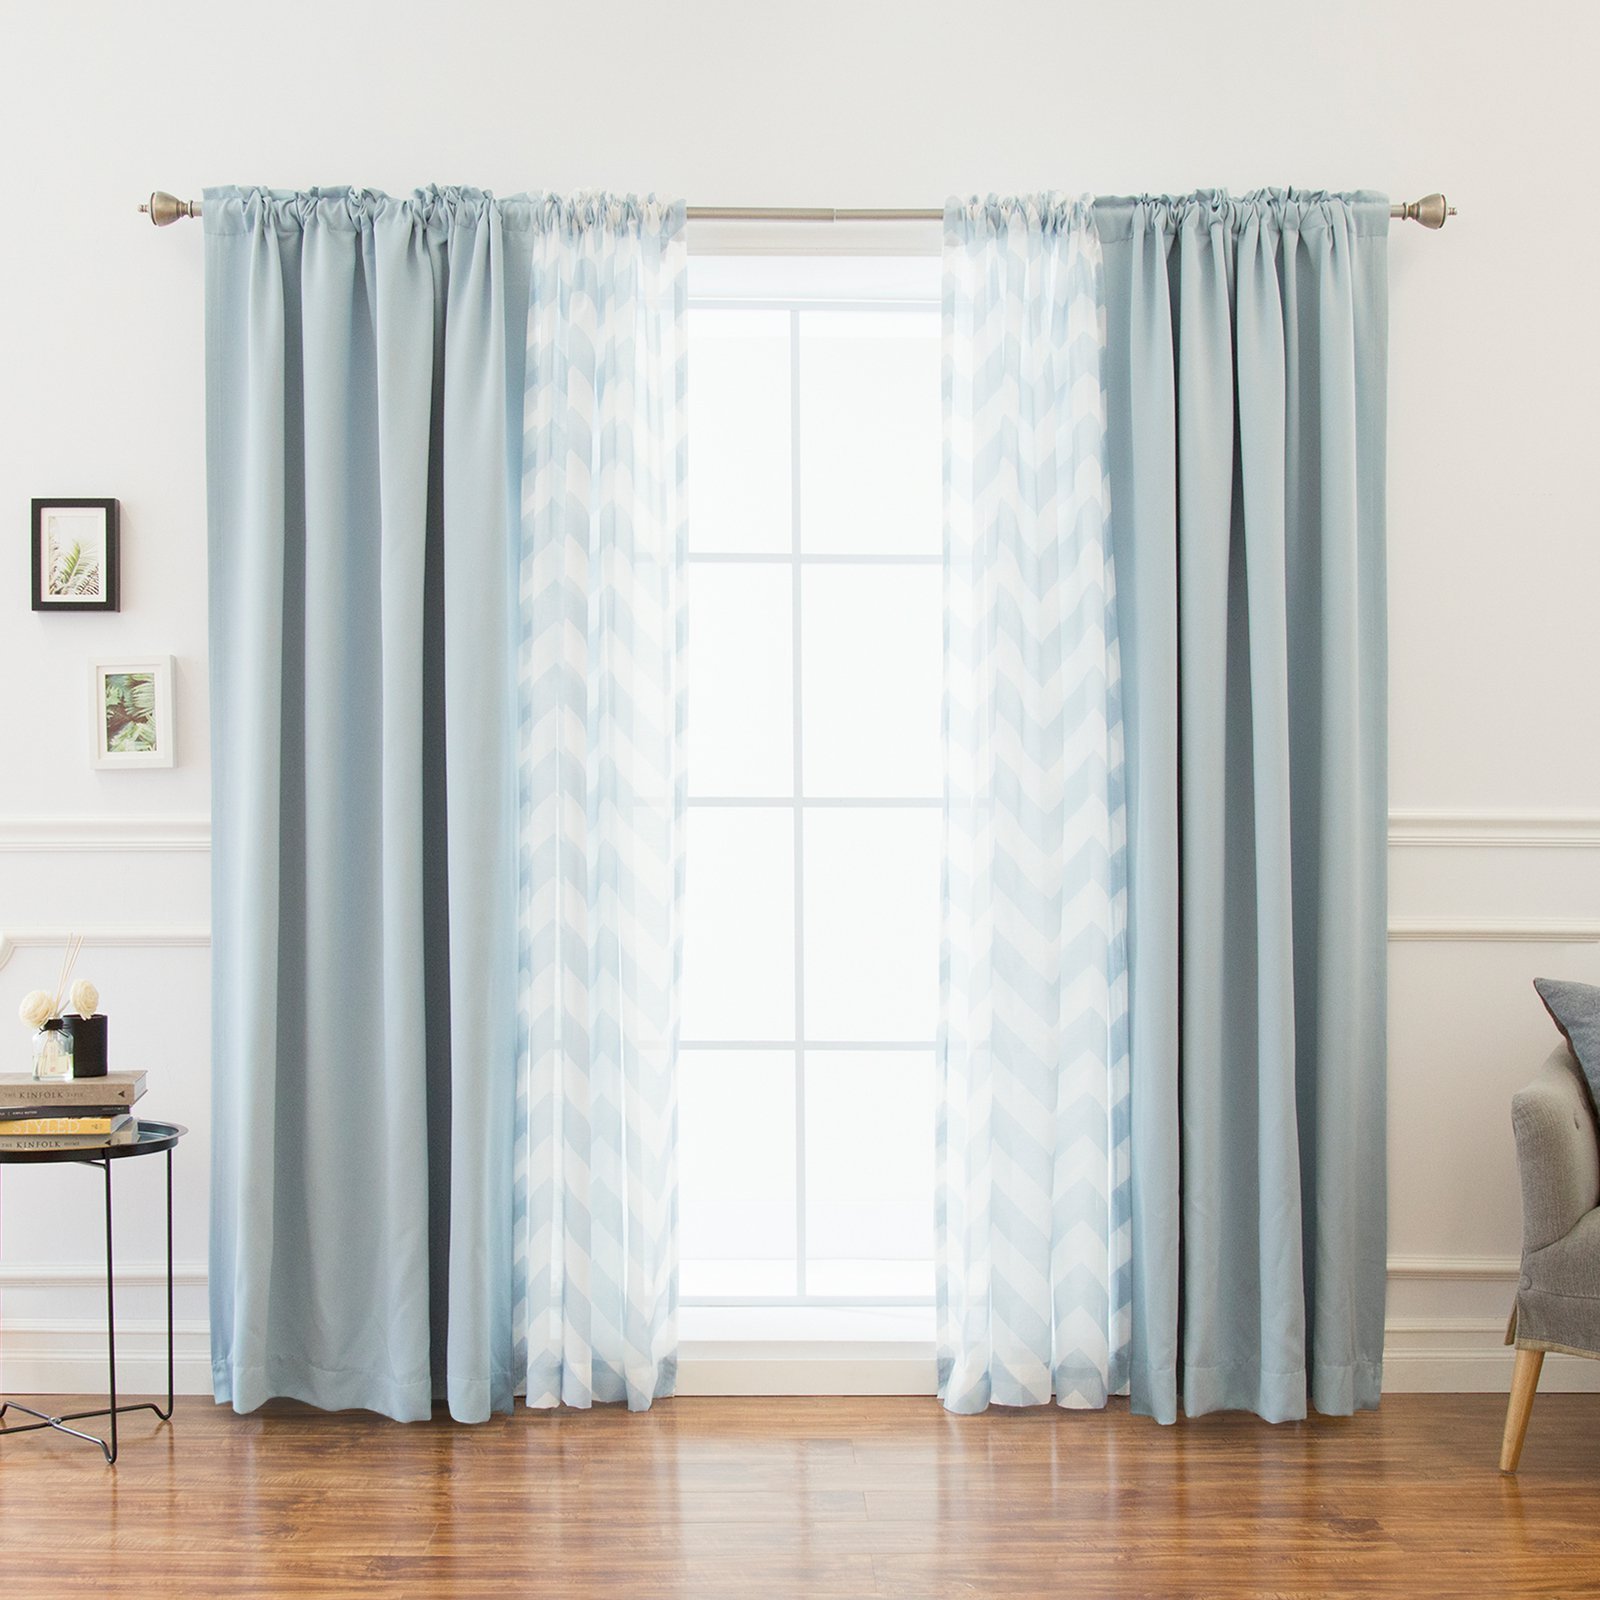 Best Home Fashion Chevron Sheer And Solid Blackout Mix And Match Curtains